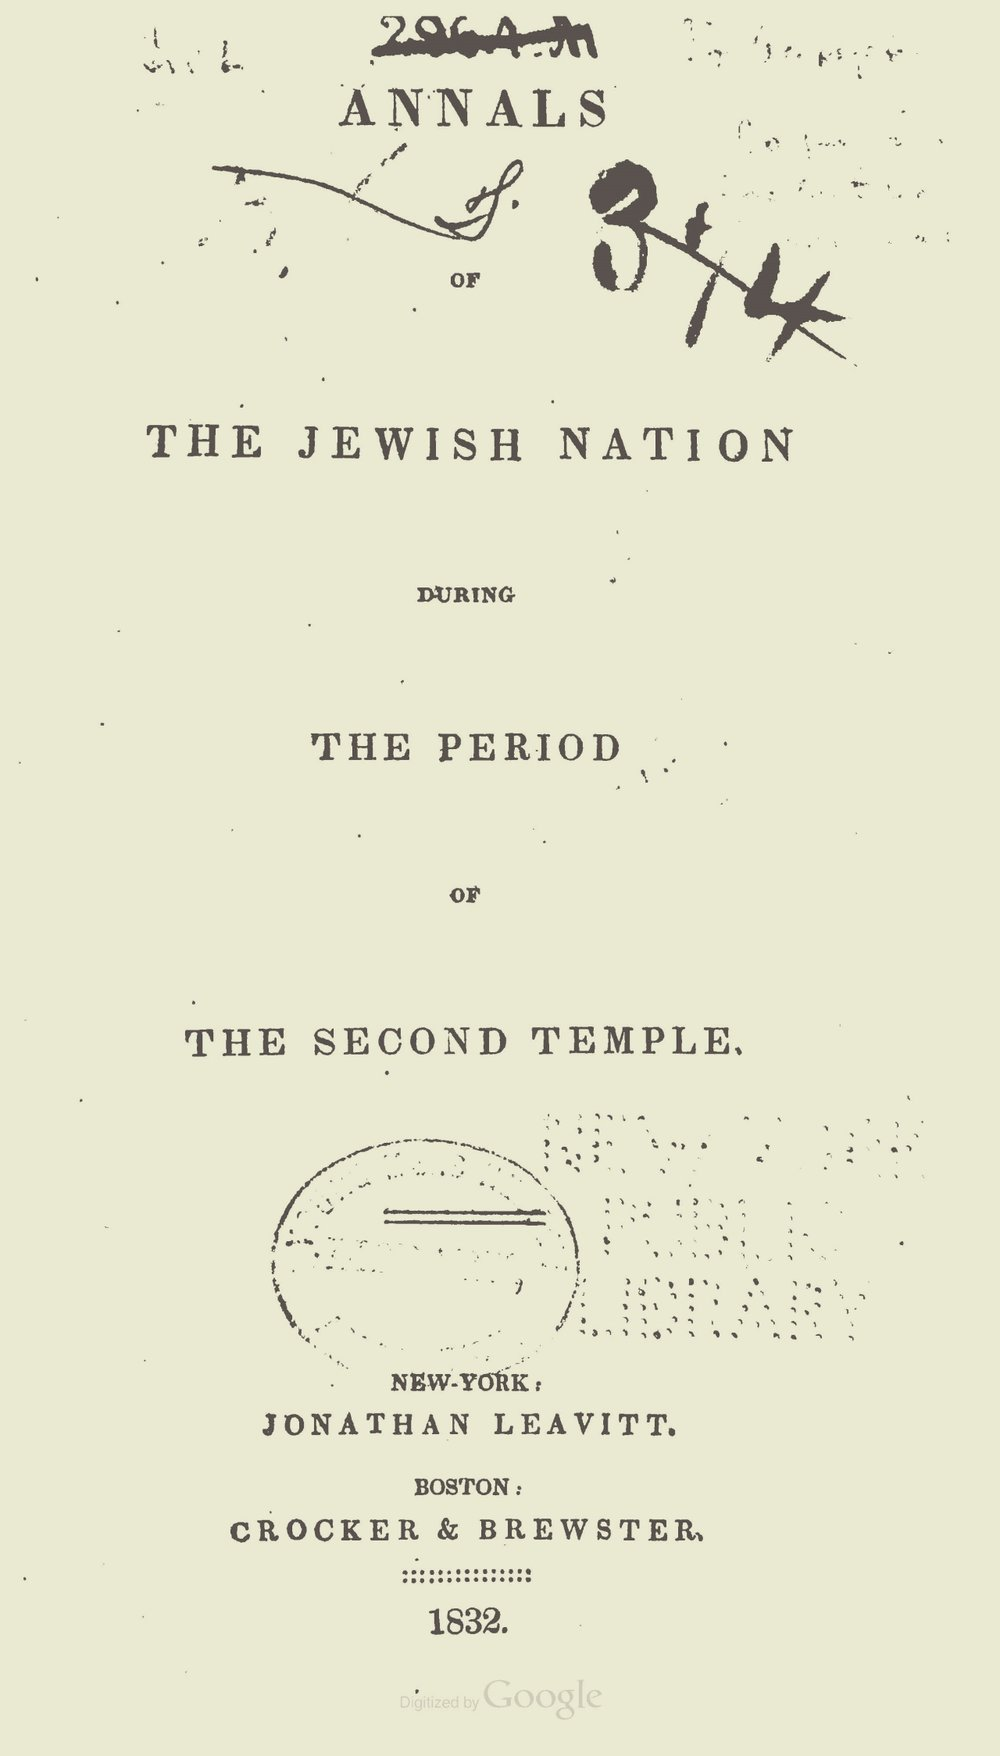 Alexander, Archibald, Annals of the Jewish Nation Title Page.jpg